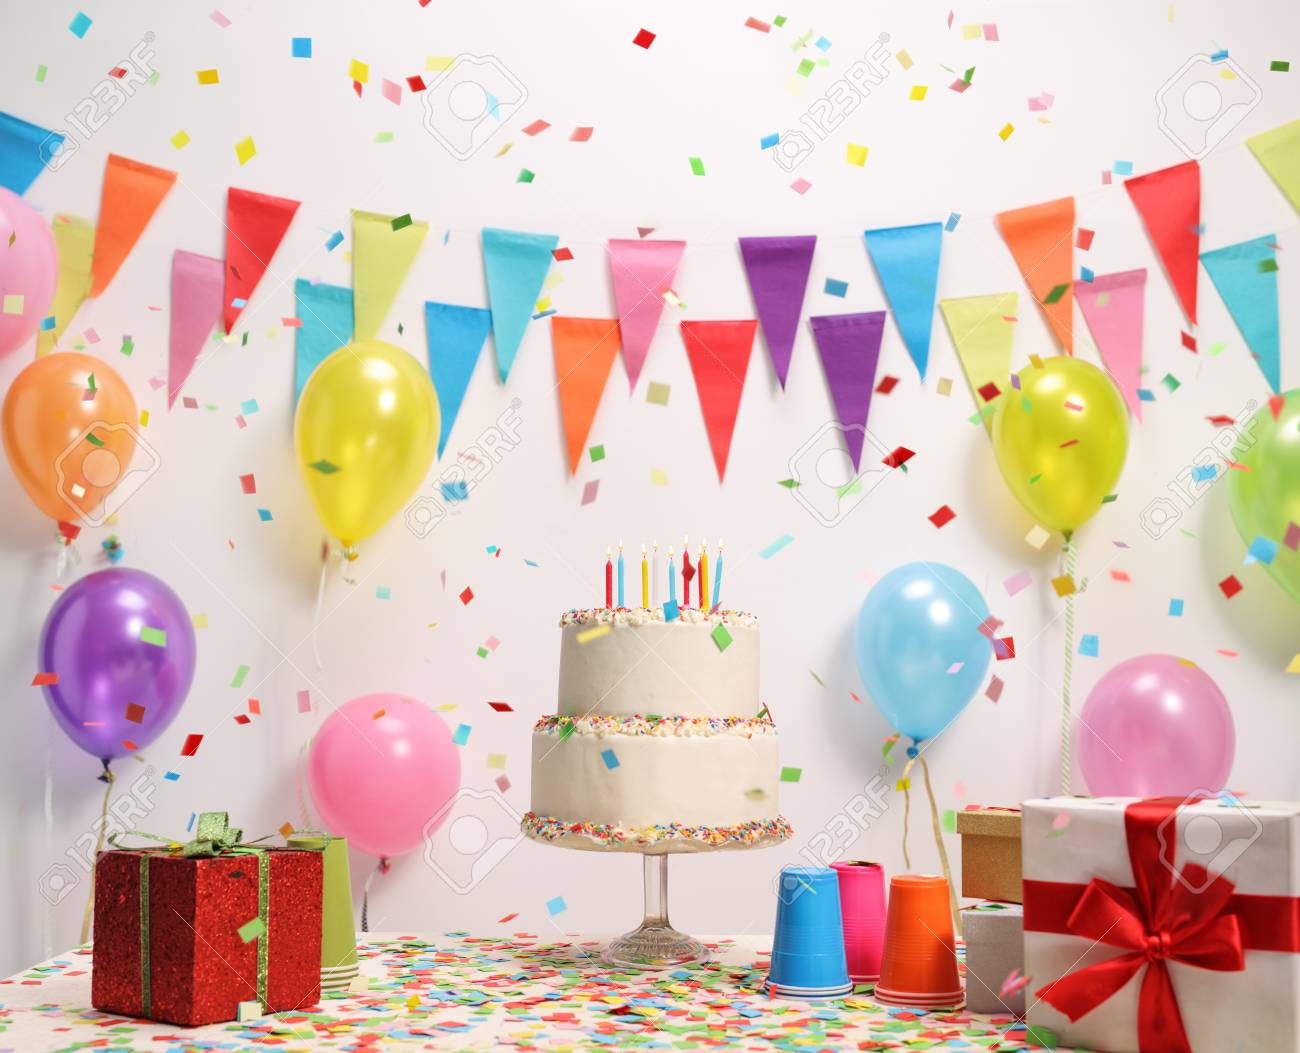 Birthday Cake On A Table Against Wall With Decoration Flags And Balloons Stock Photo